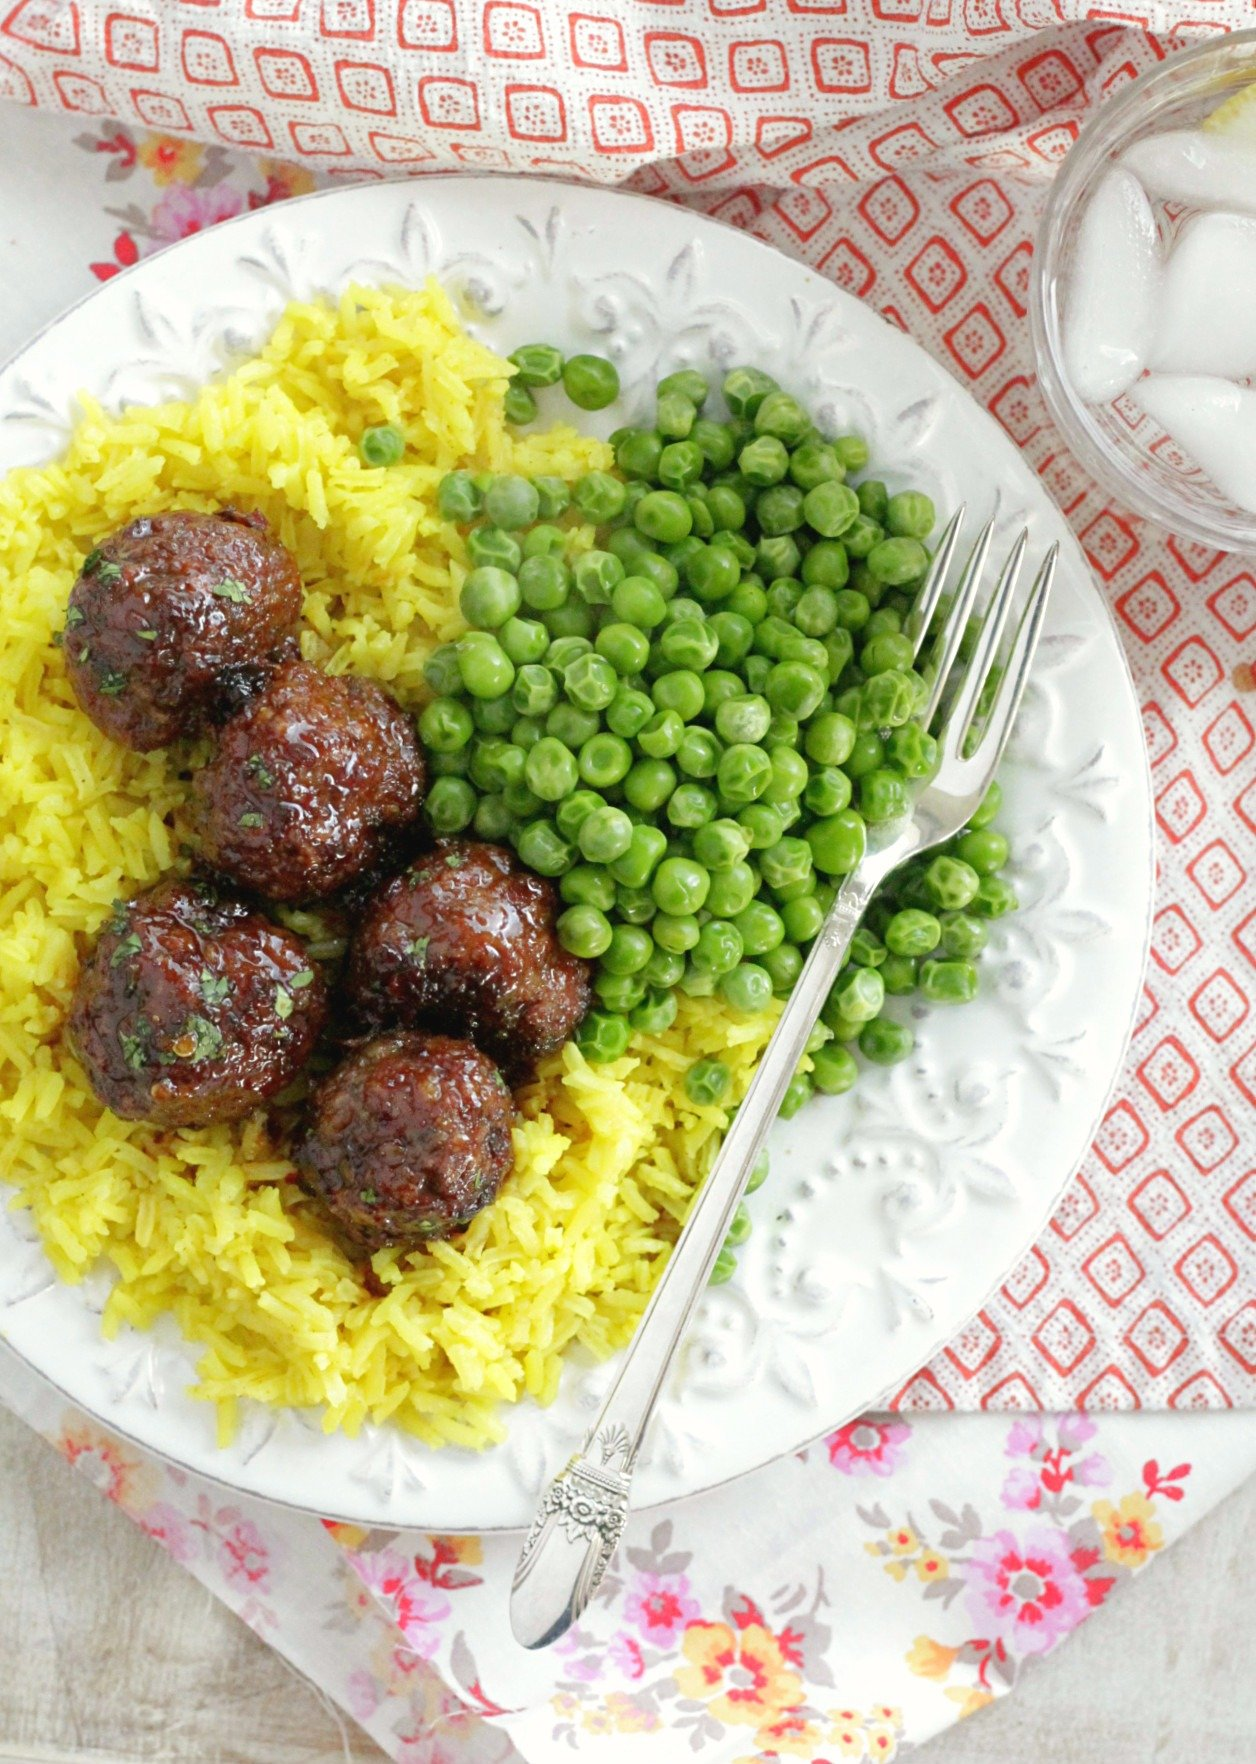 lemon rice on a plate with meatballs and peas